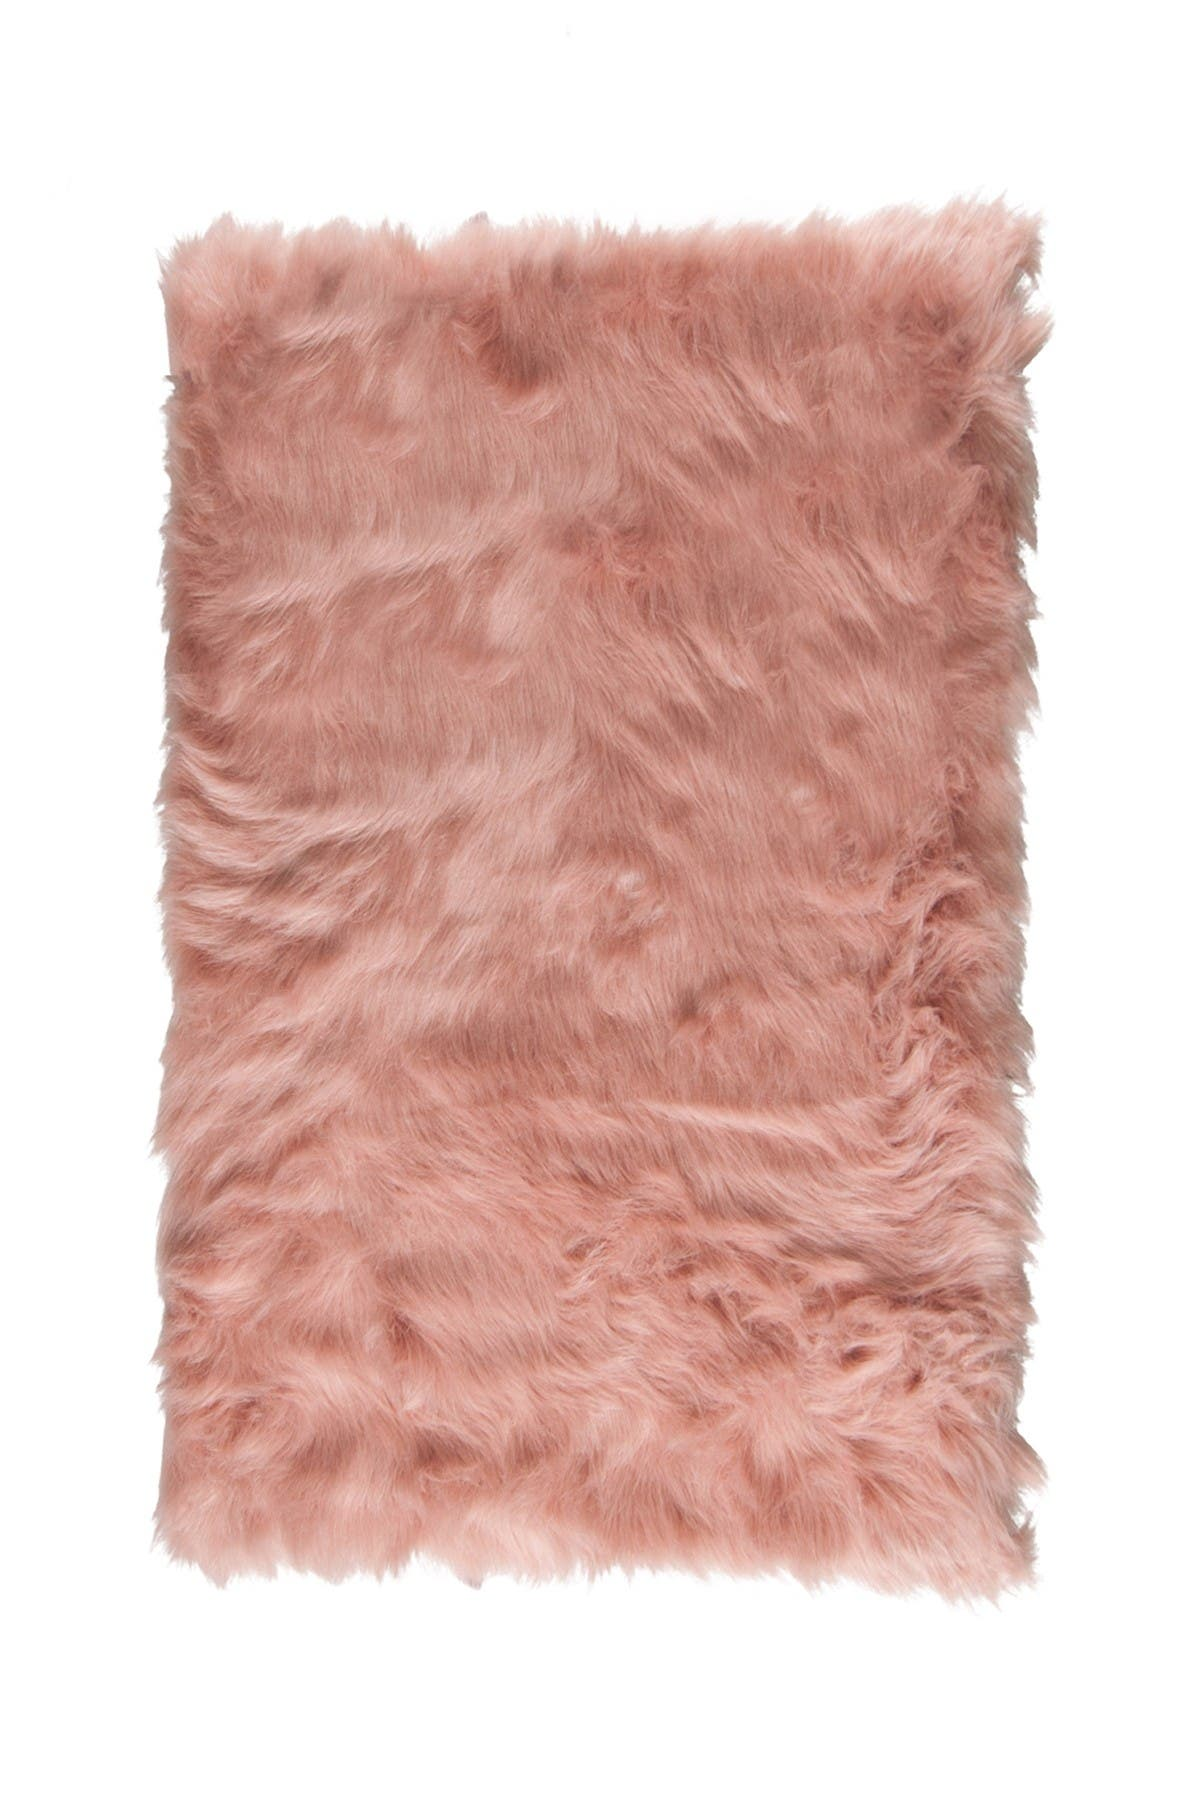 Image of LUXE Hudson Faux Sheepskin Rug - 2ft x 3ft - Dusty Rose